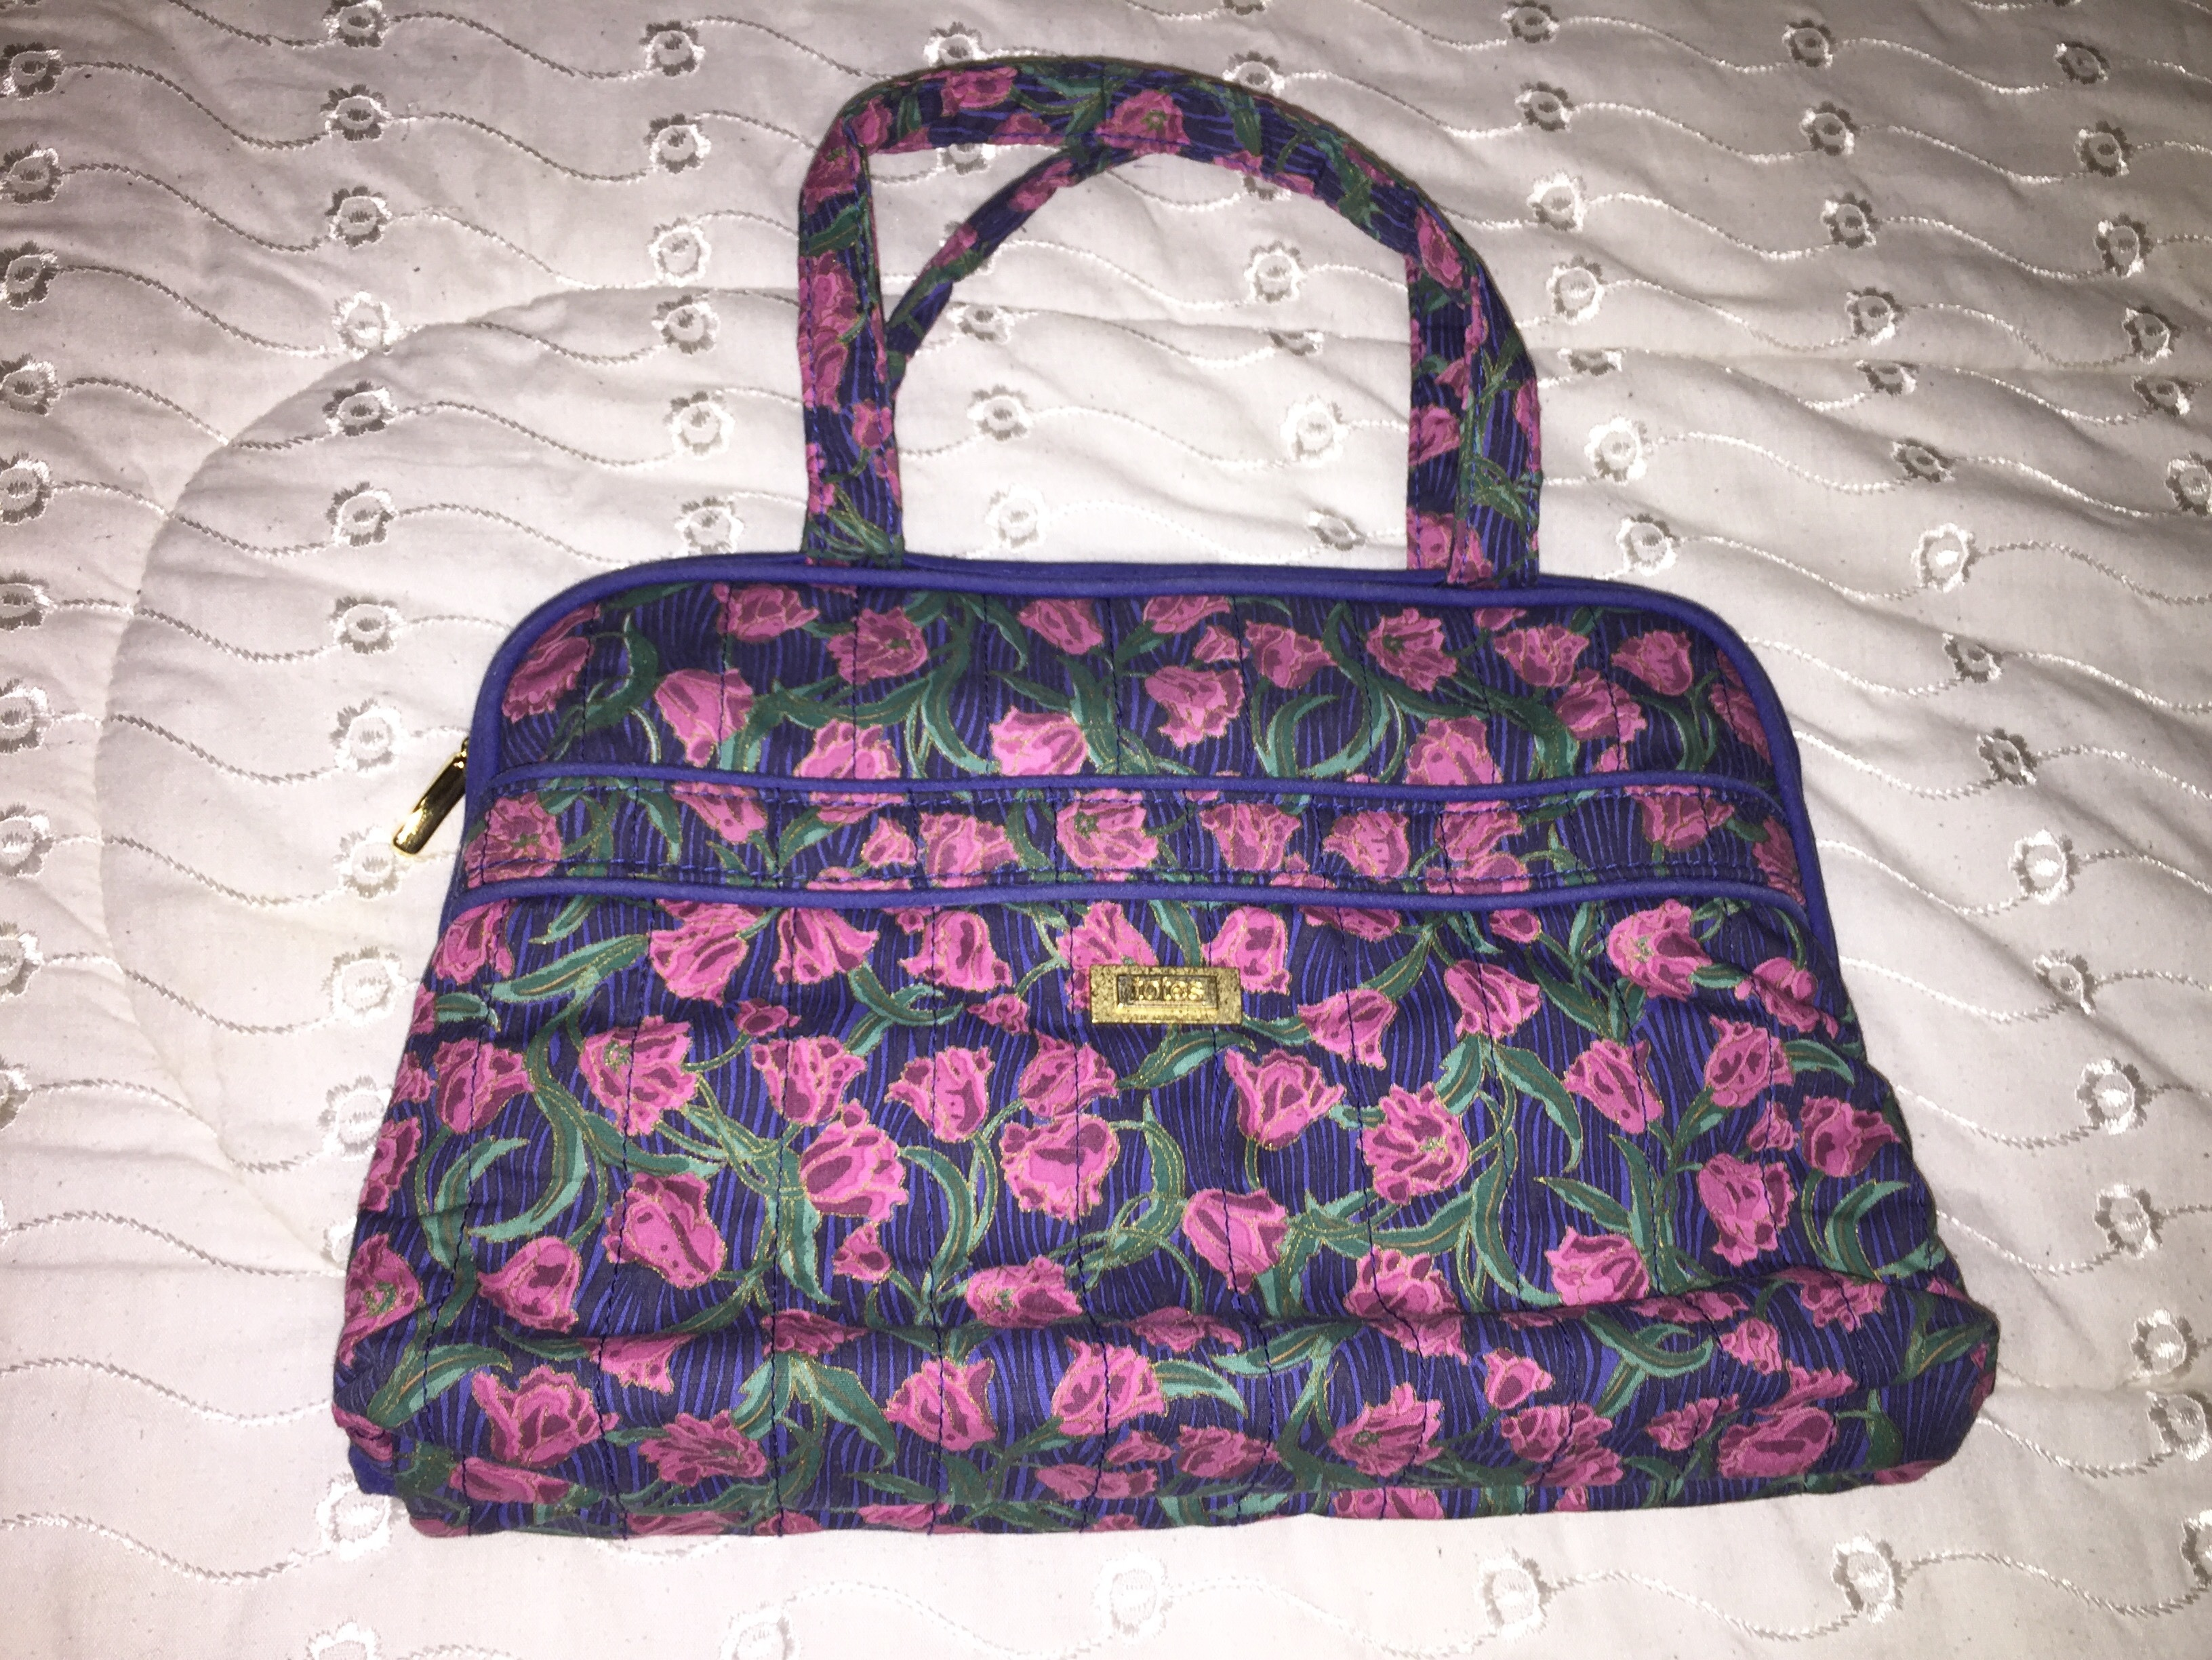 Totes Travel Set Toiletry Bag And Jewlery Bag In Blue And Purple Floral Pattern Available For ...